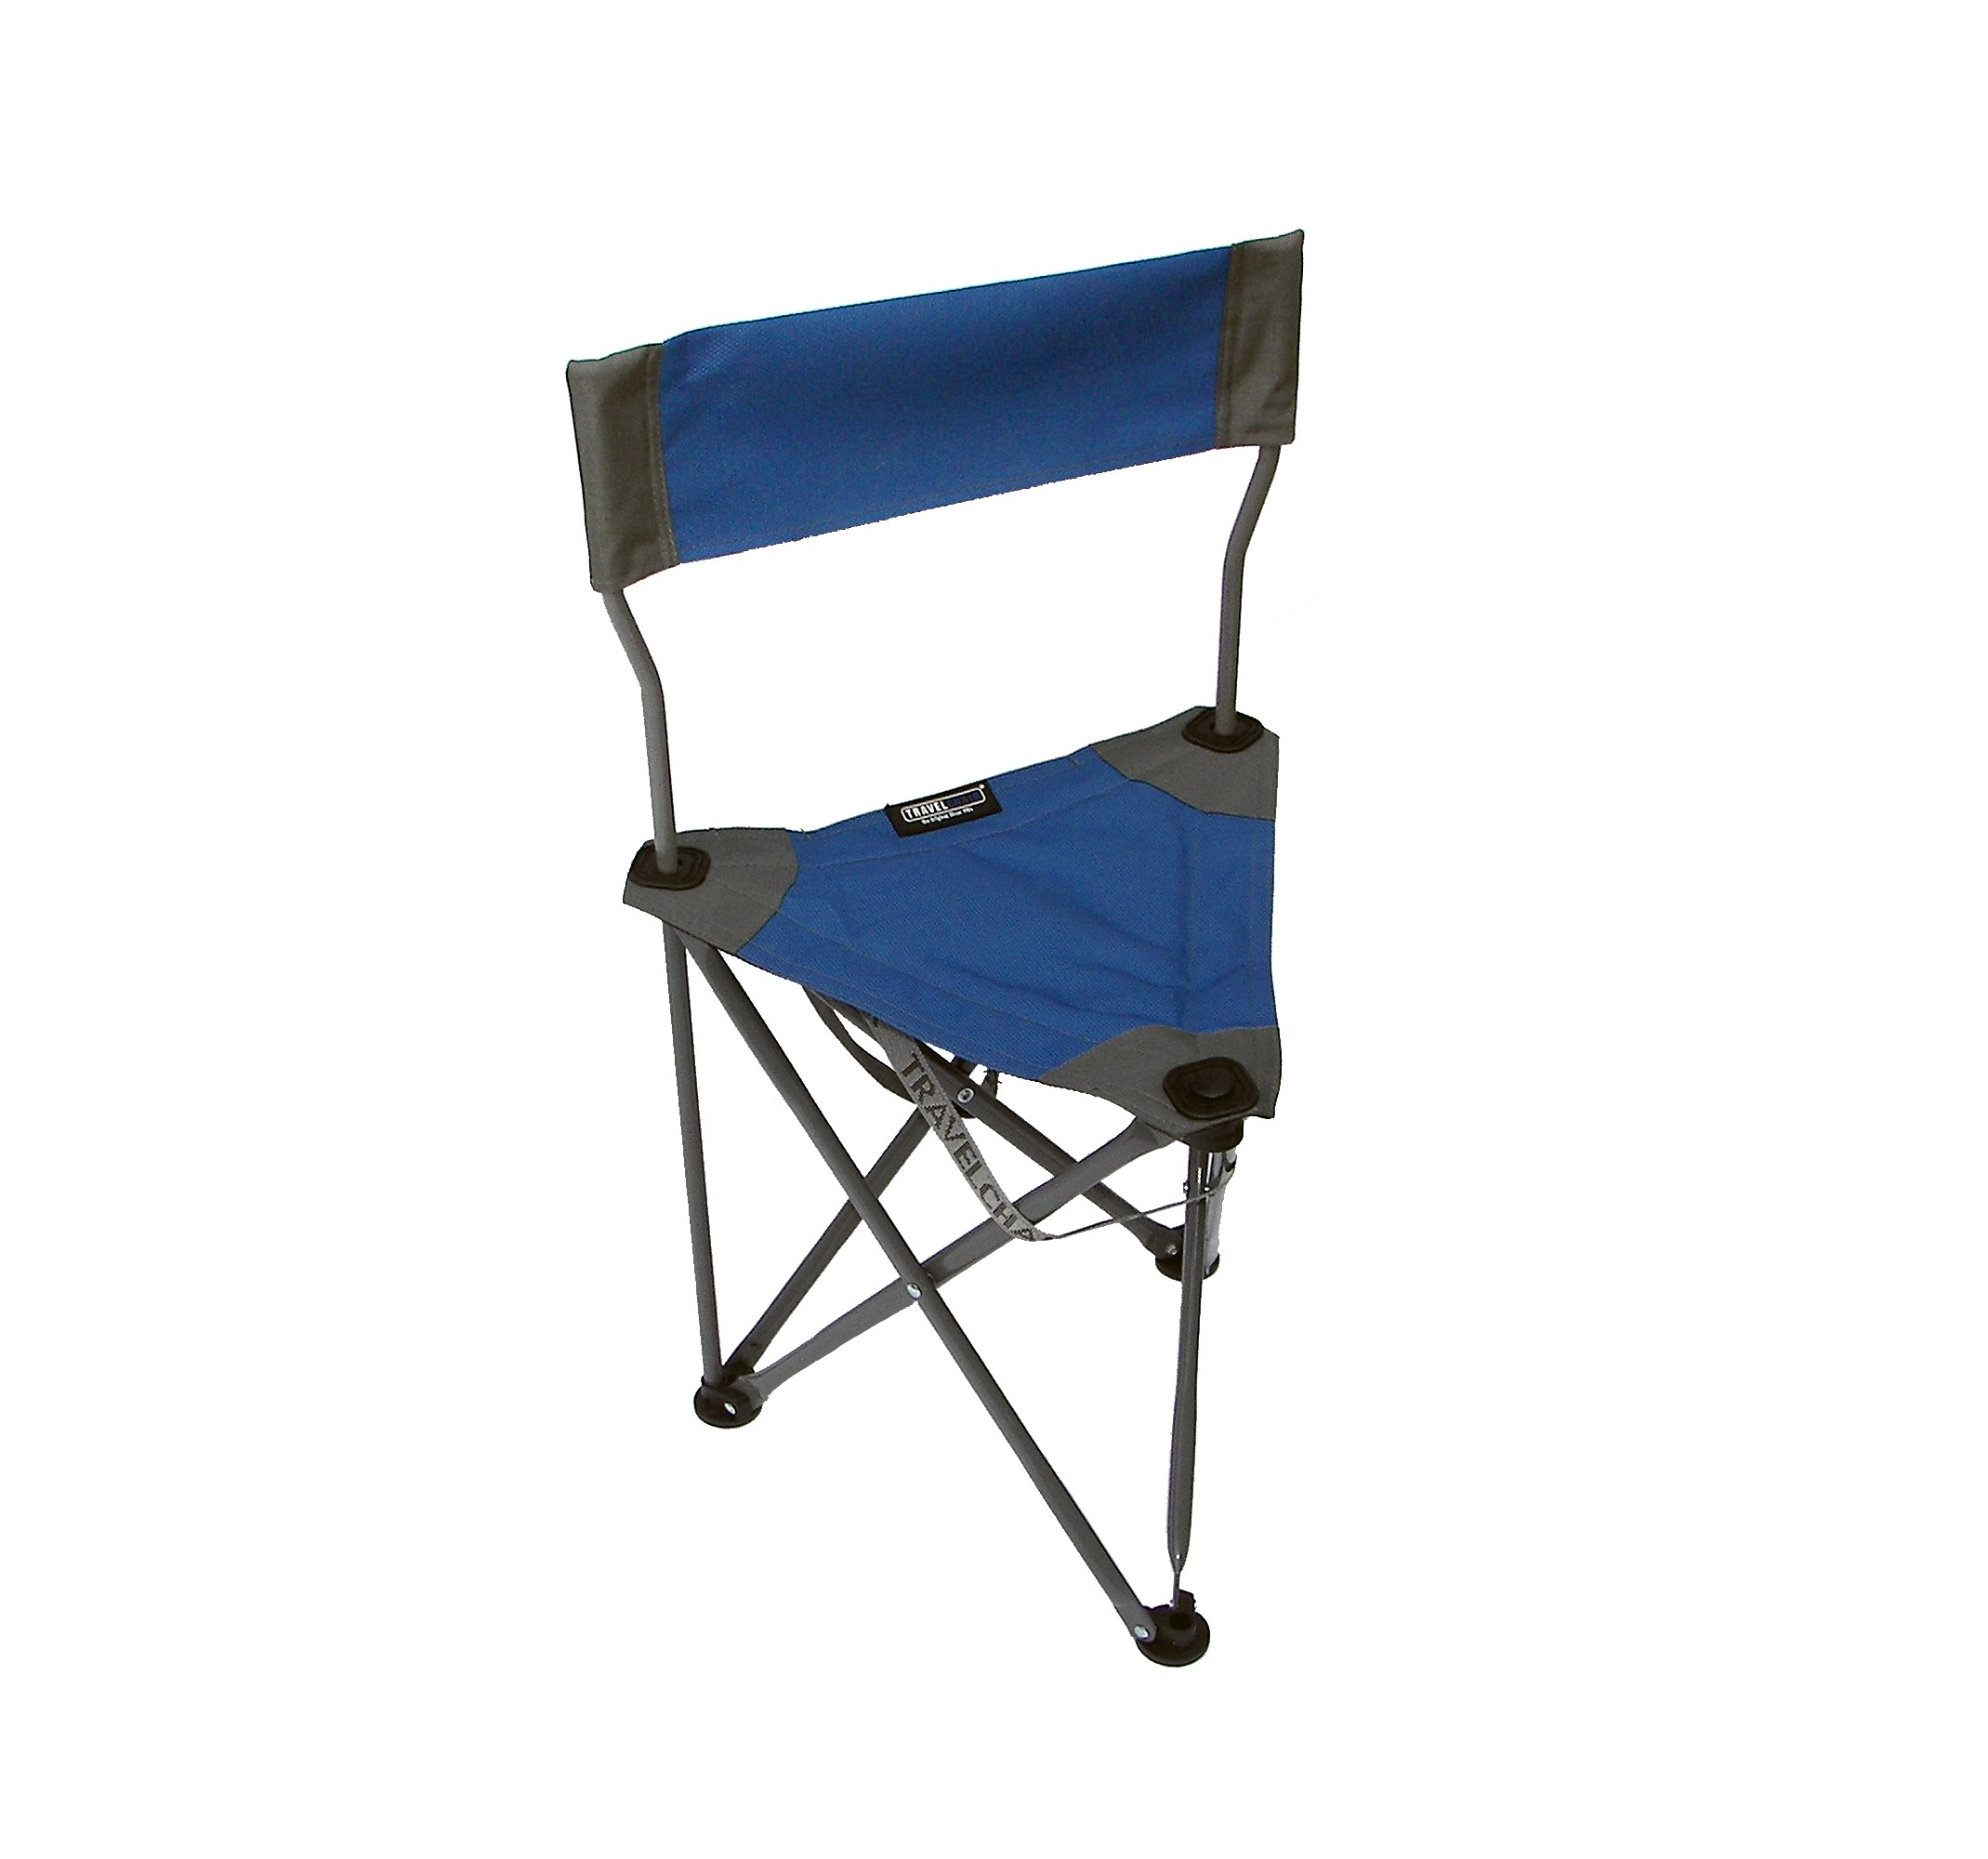 Portable Stool Travelchair 1489v2 Ultimate Slacker 2 Portable Blue Black Green Or Red Collapsible Camping Stool